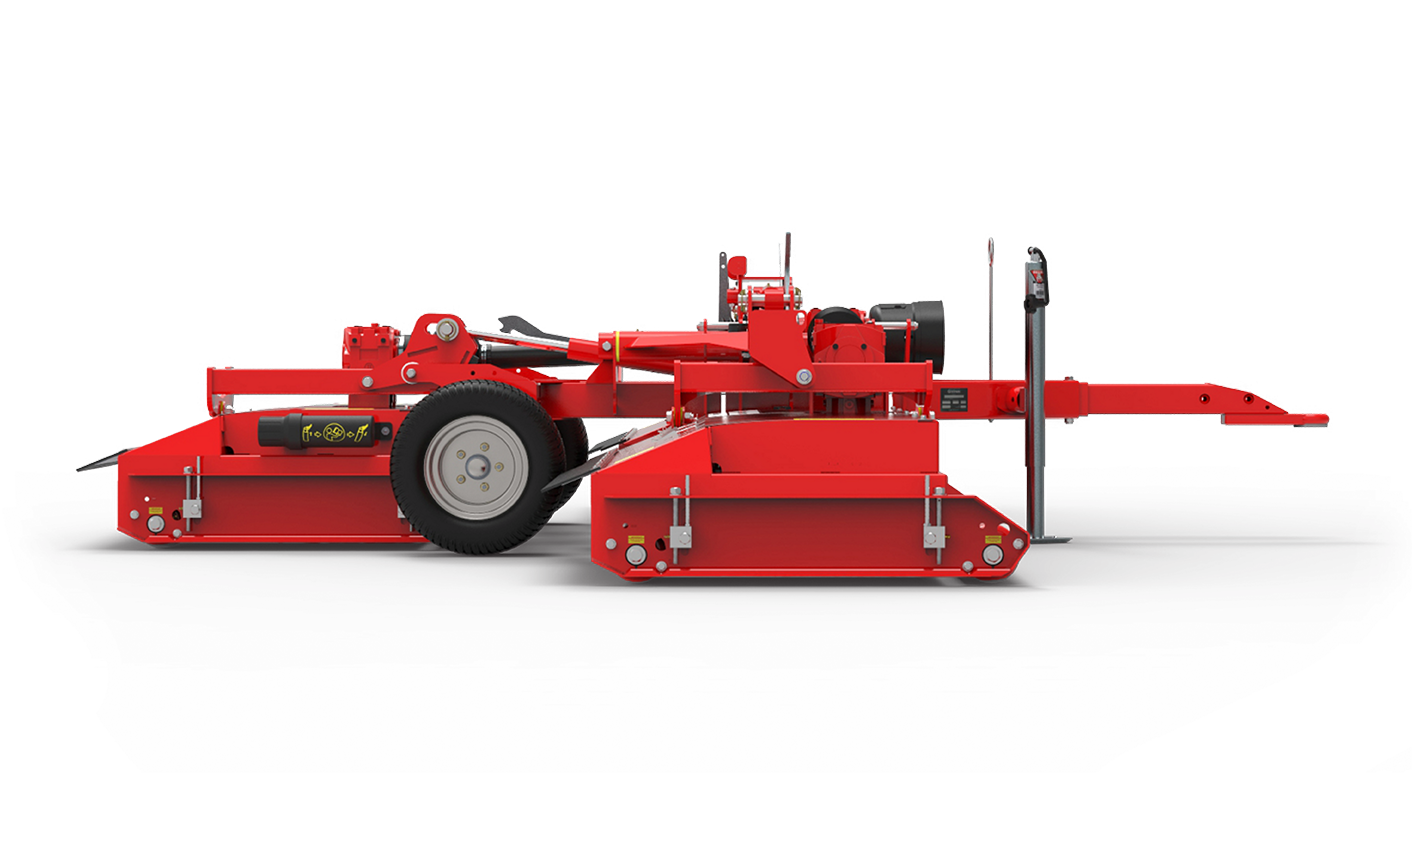 Snake S2 sideview Mower red